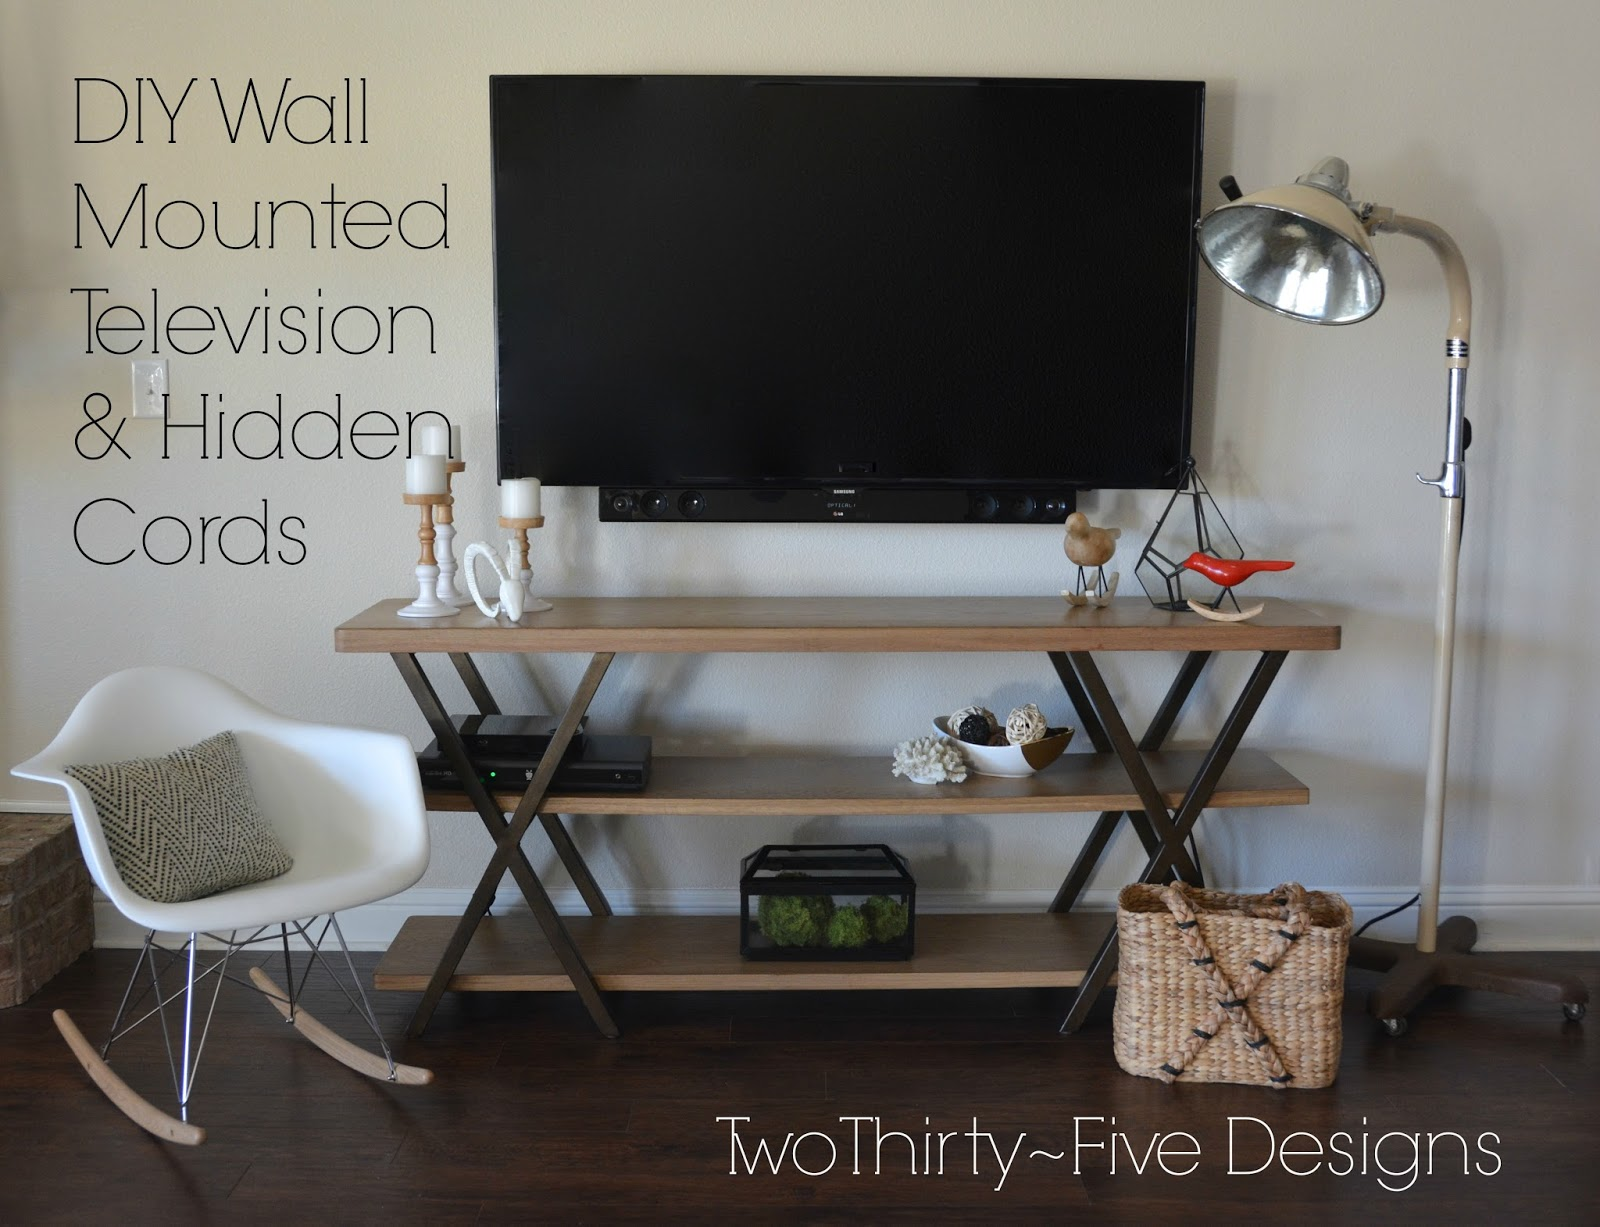 DIY Wall Mounted Television Hidden Cords Two ThirtyFive Designs